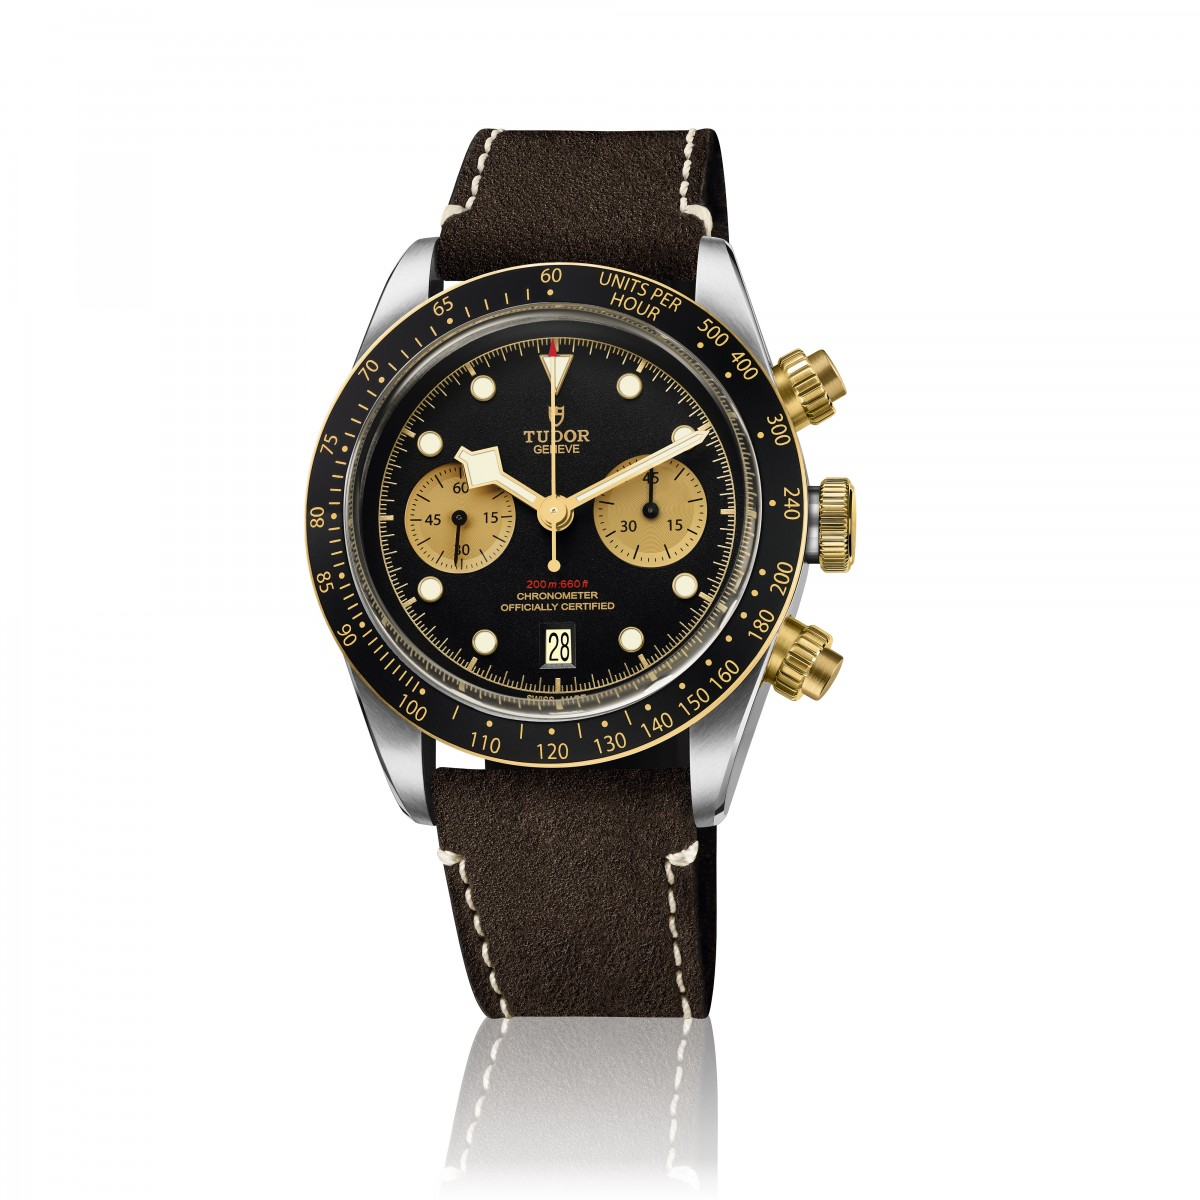 TUDOR Black Bay Chrono S&G 2019 Baselworld